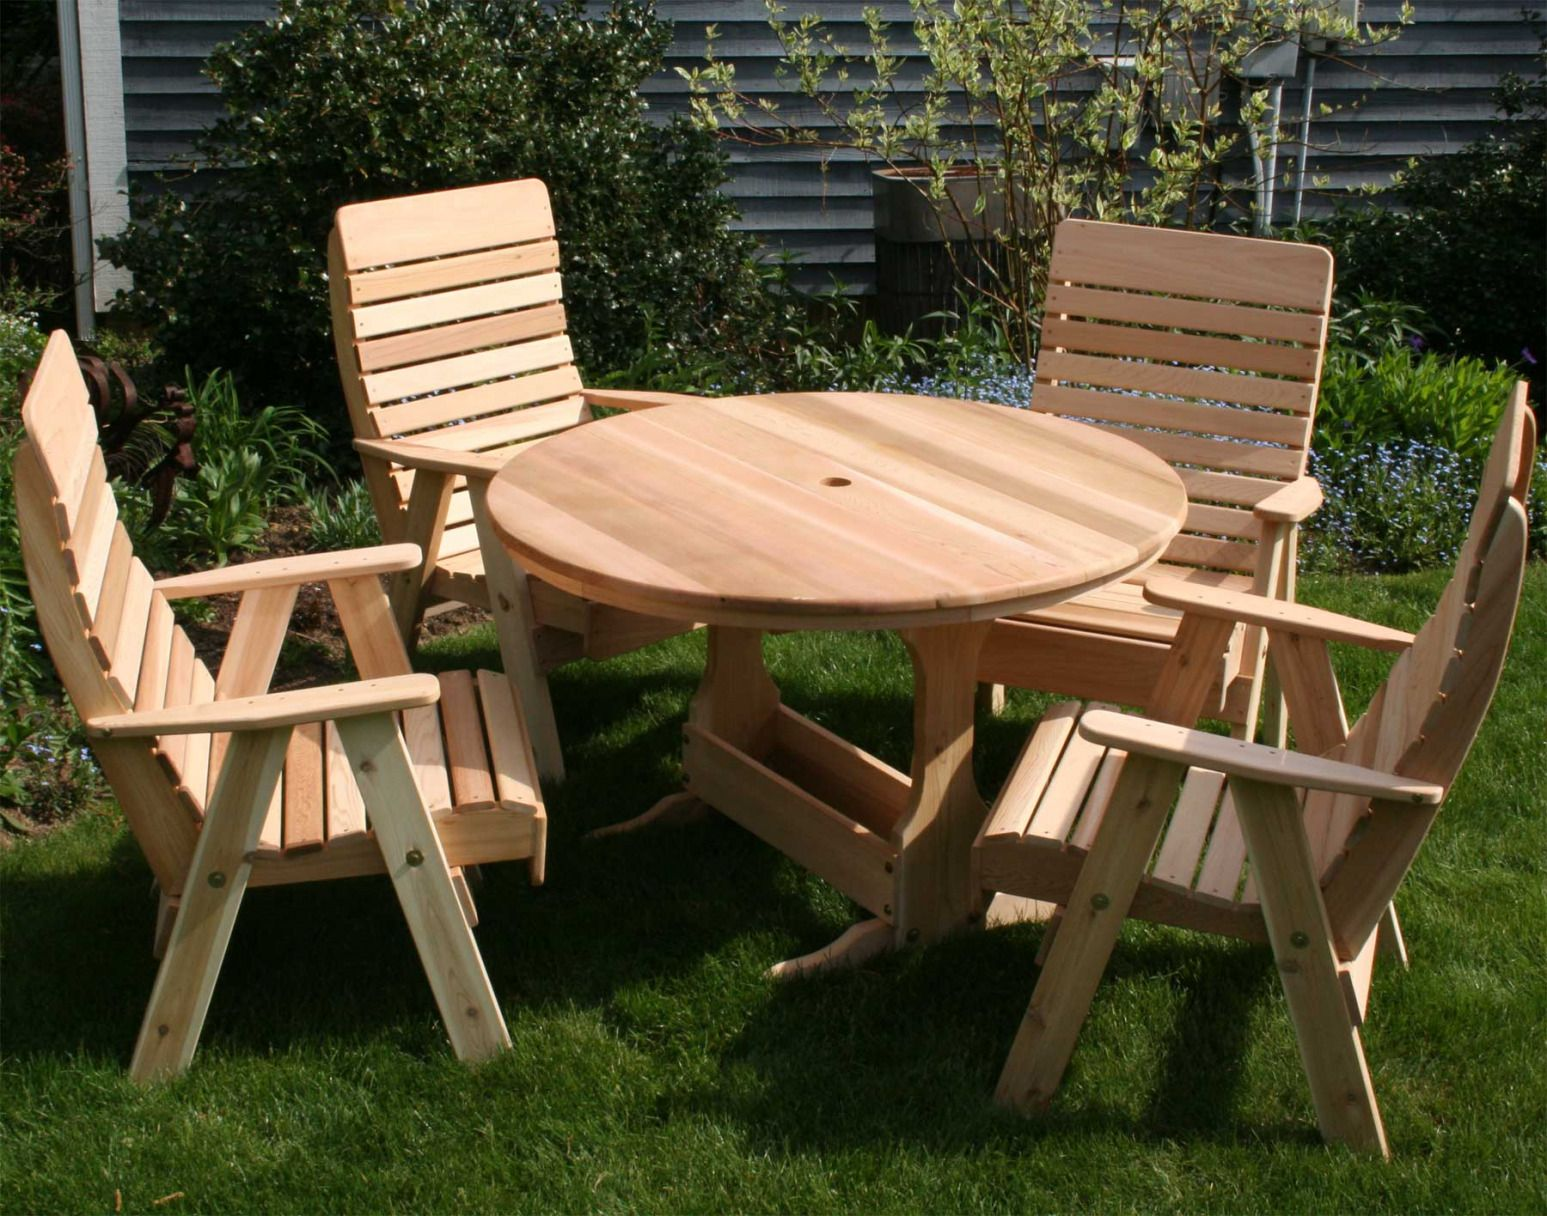 100 Round Picnic Table With Umbrella Hole Best Master Furniture Check More At Http